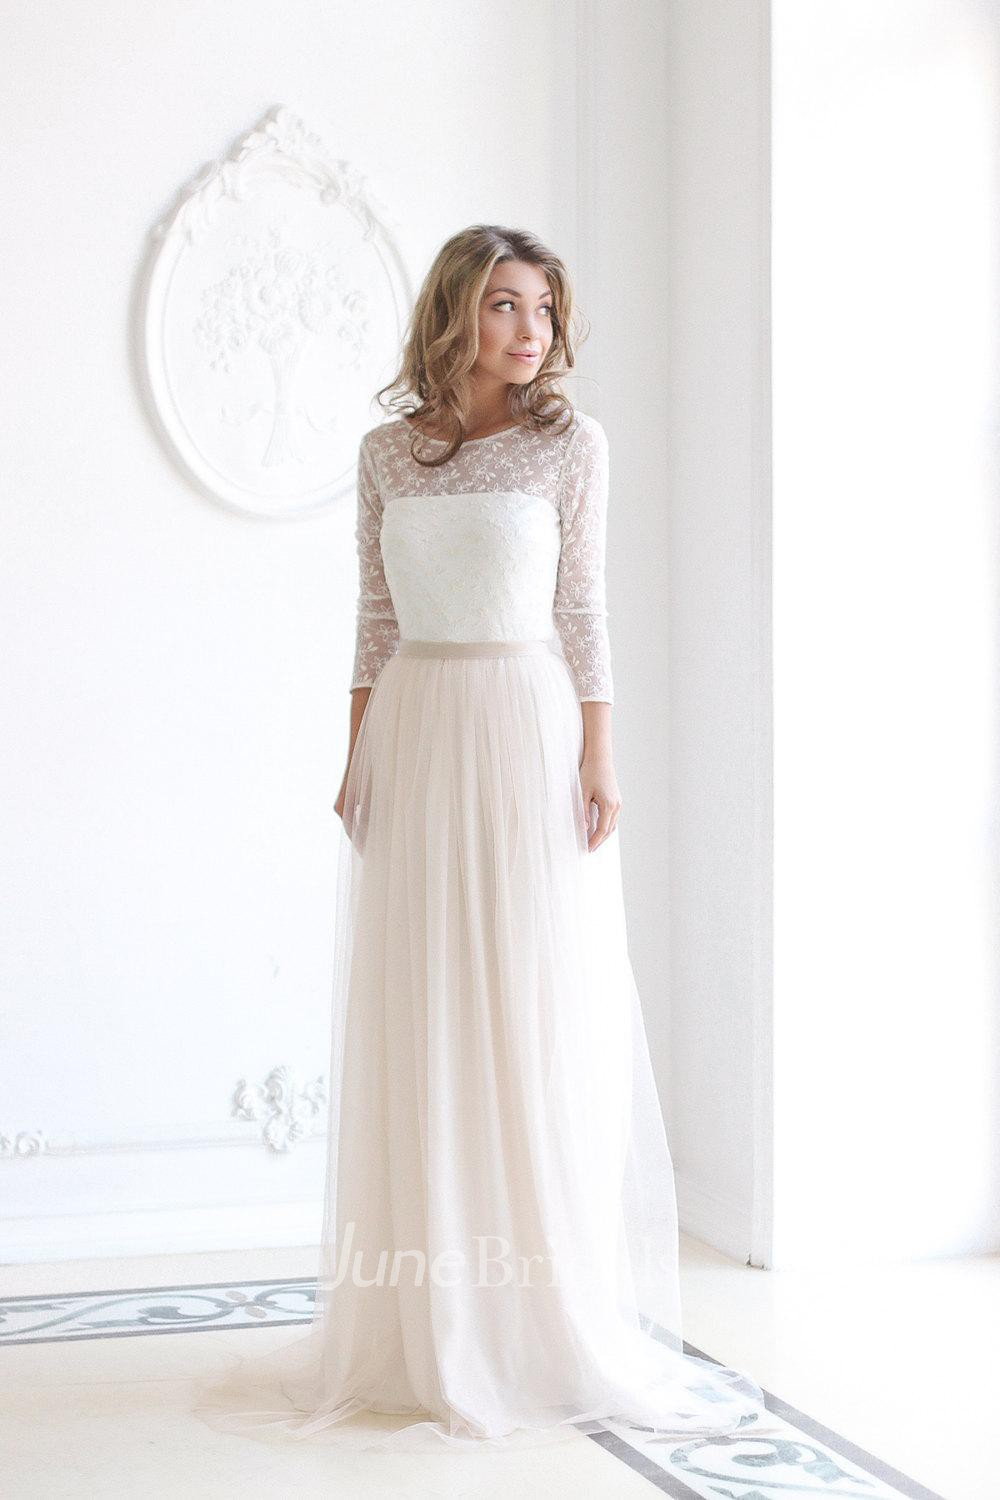 modest wedding dresses modest wedding dresses cheap Scoop Neck Long Sleeve Tulle Wedding Dress With Lace Bodice